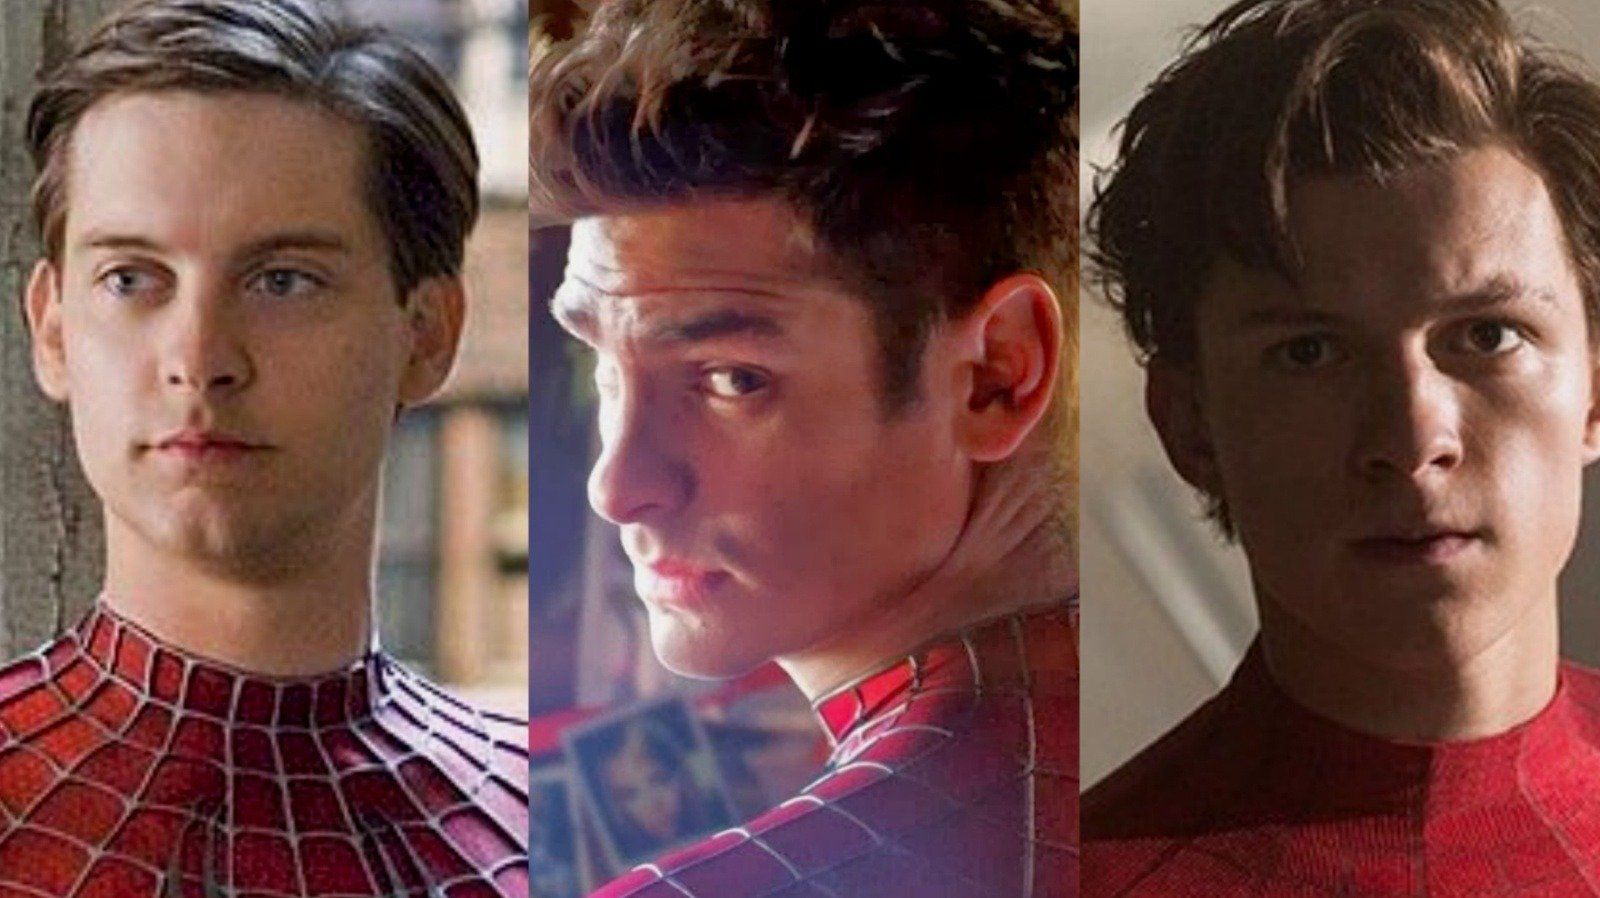 Will The Next Spider-Man Movie Be A Live-Action Spider-Verse With Andrew Garfield And Tobey Maguire?